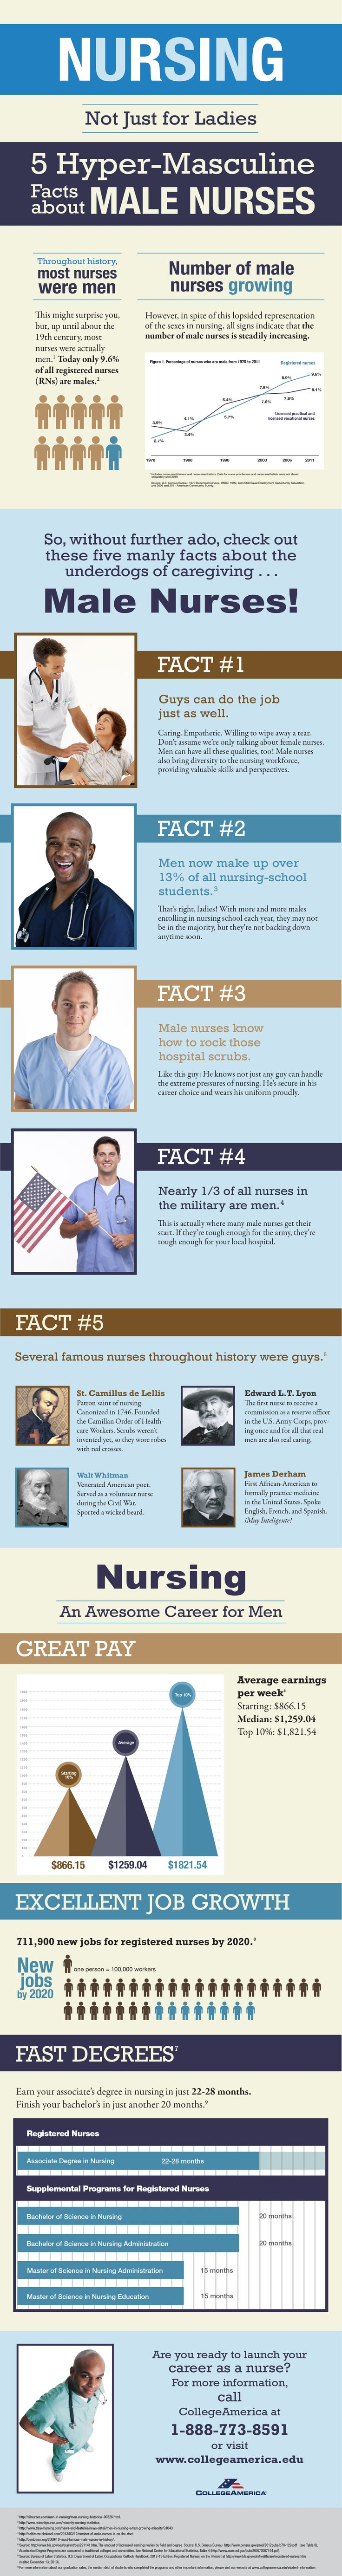 Men in Nursing 5 Facts about Male